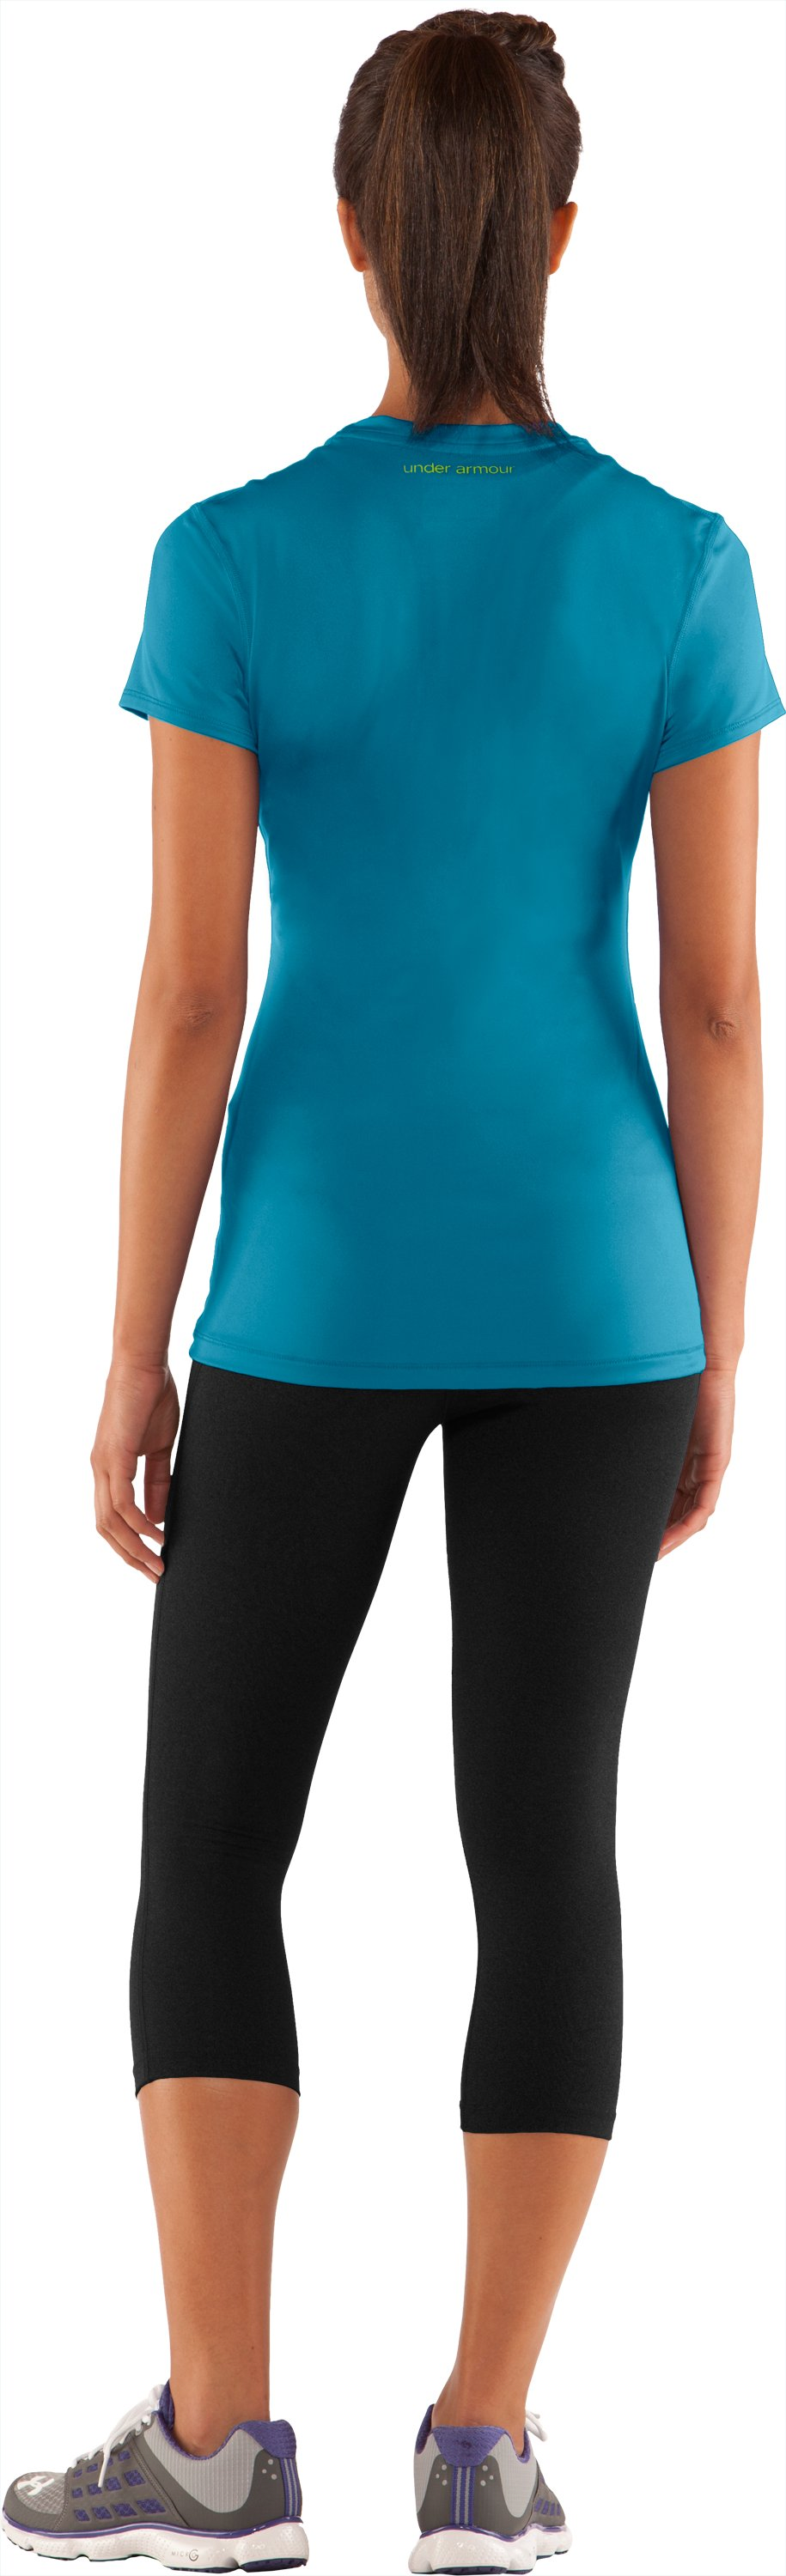 Women's HeatGear® Sonic Short Sleeve, Break, Back